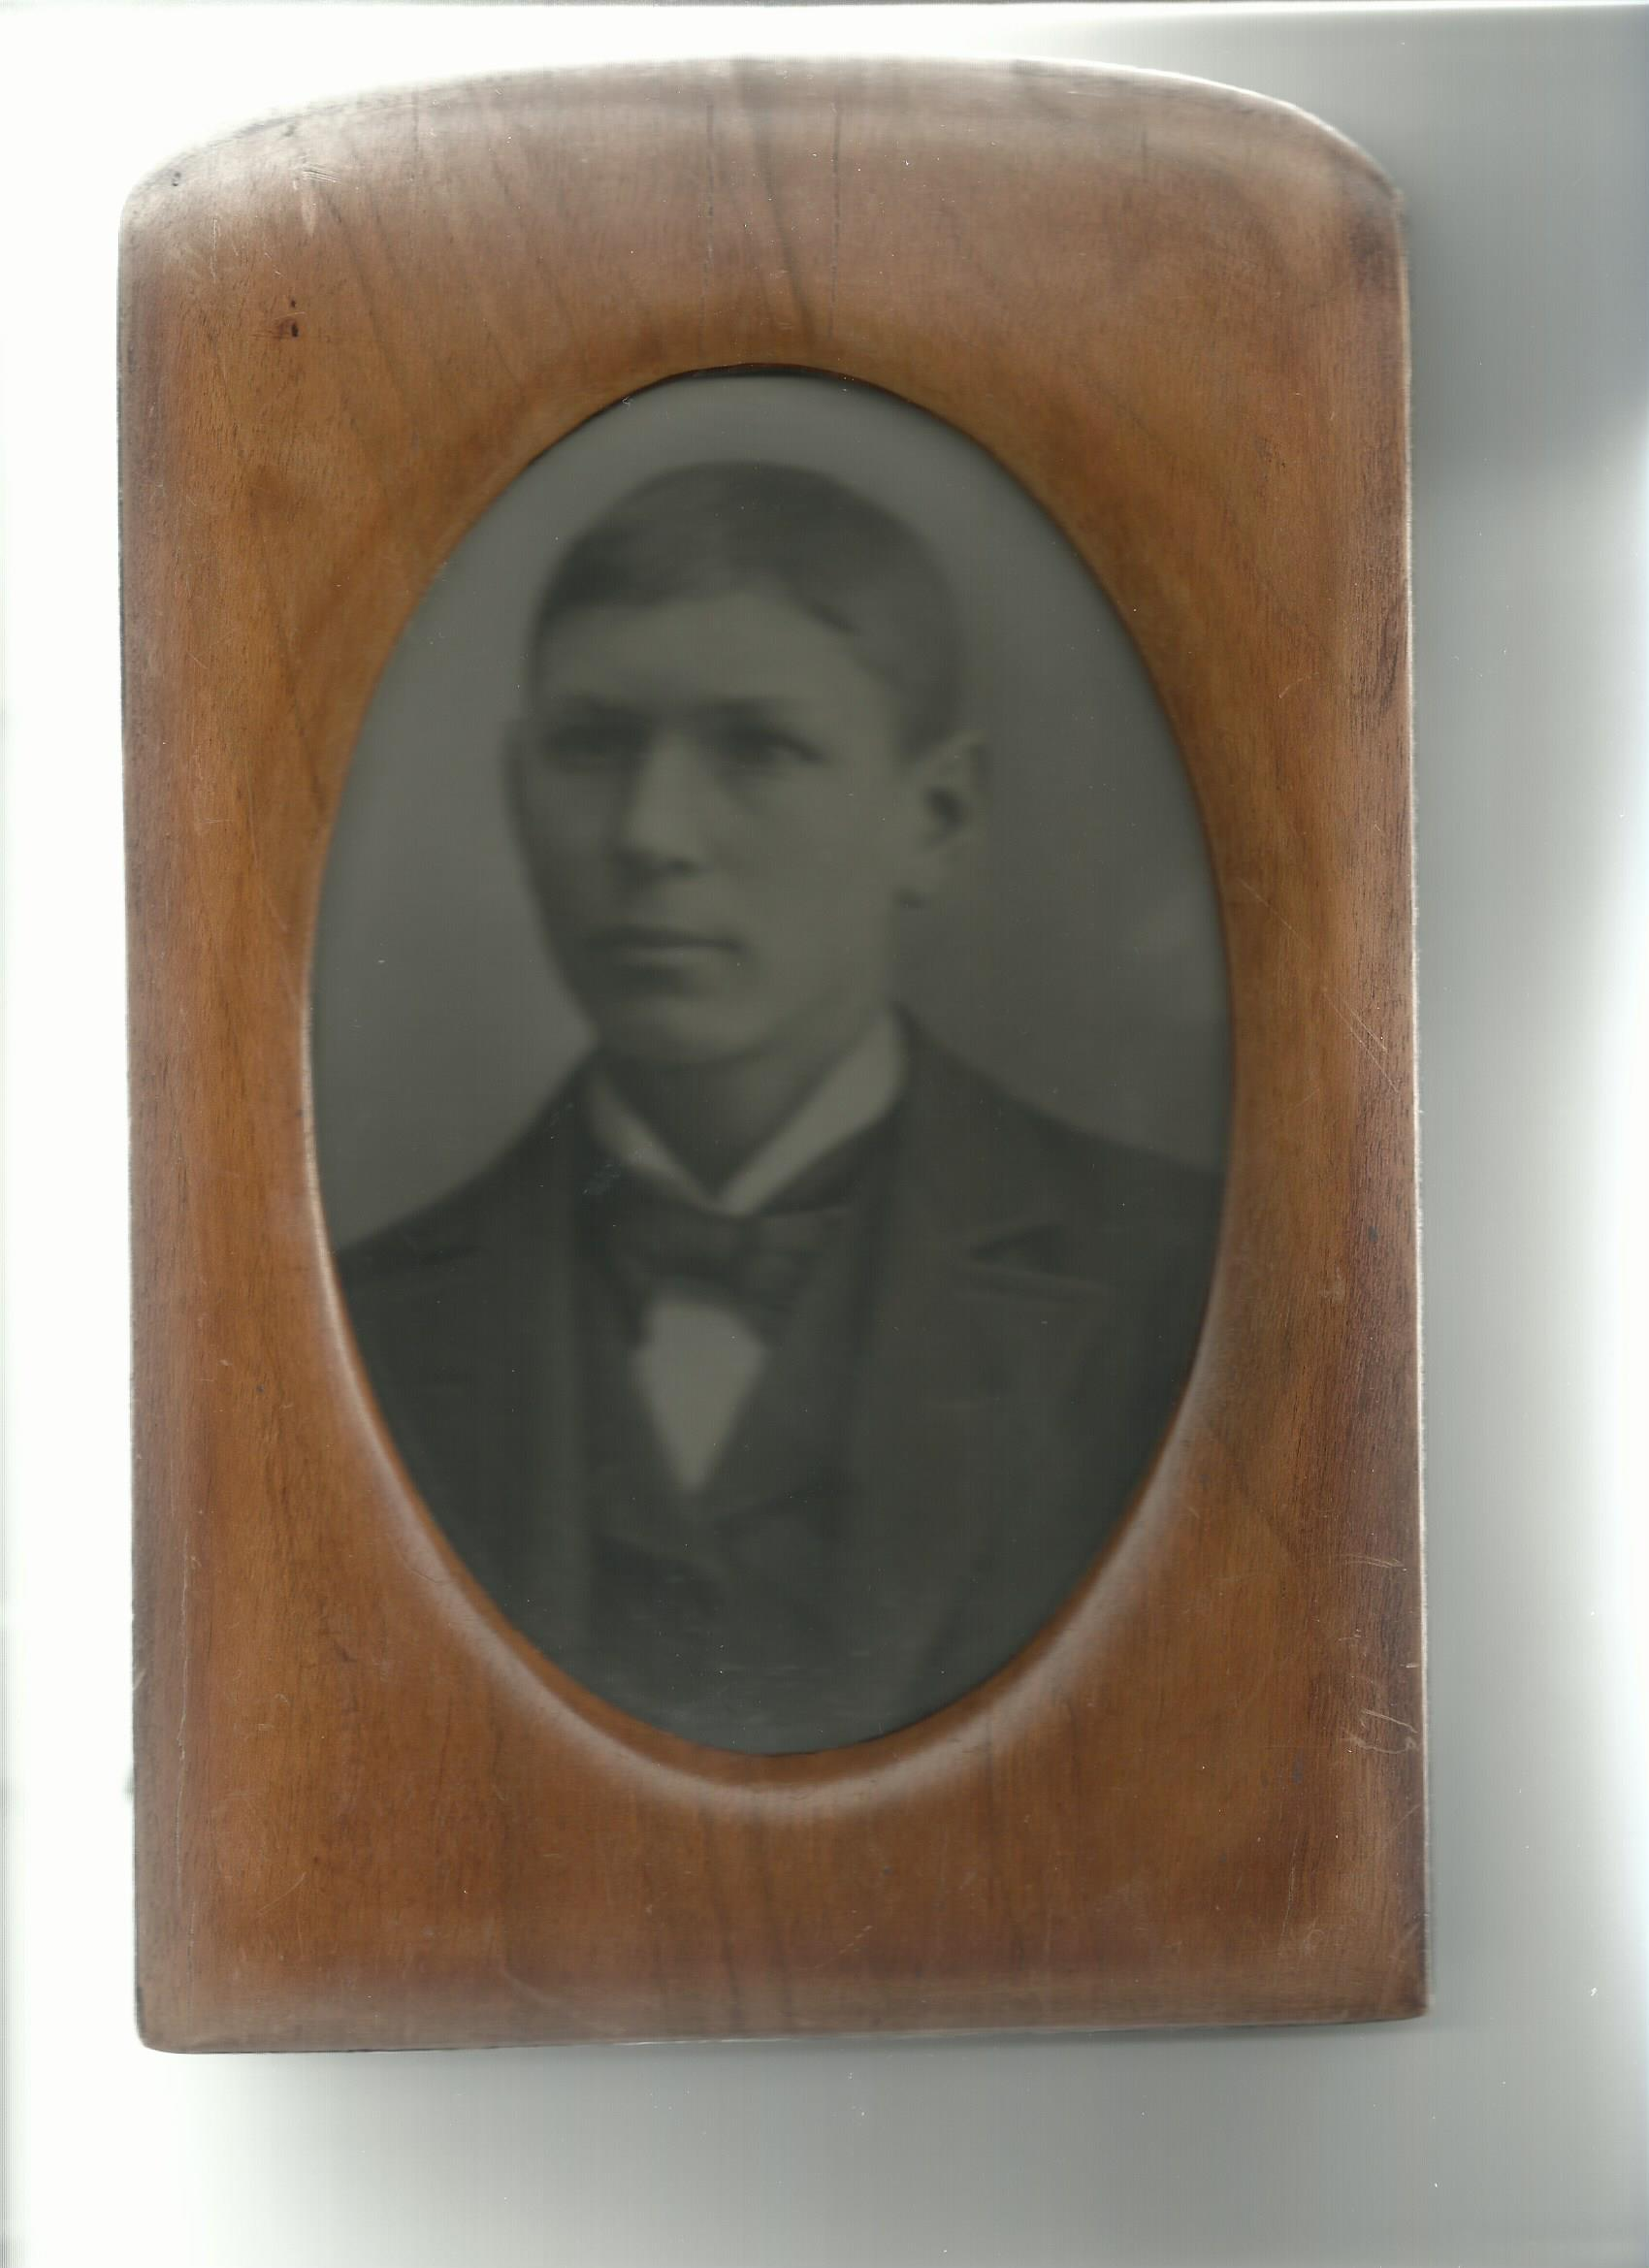 Photo of Andrew Bergstedt– The image of Andrew Bergstedt is taken at Kville, Bohuslan, Sweden before his emigration to Canada. 25 years old.